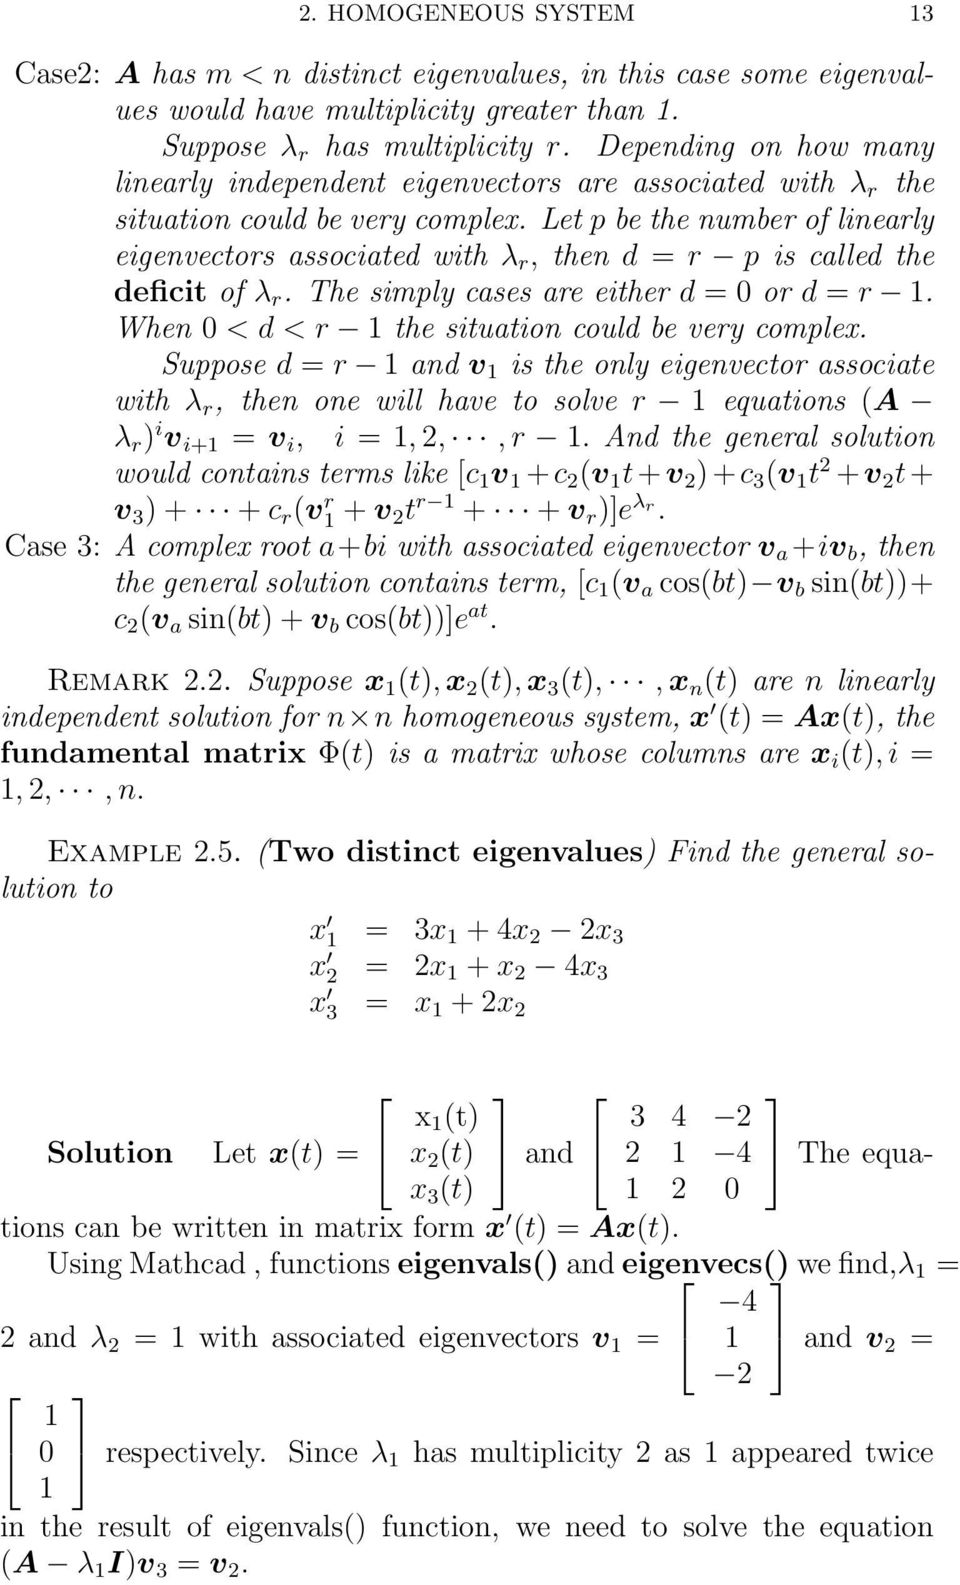 Let p be the number of linearly eigenvectors associated with λ r, then d = r p is called the deficit of λ r. The simply cases are either d = or d = r. When < d < r the situation could be very complex.